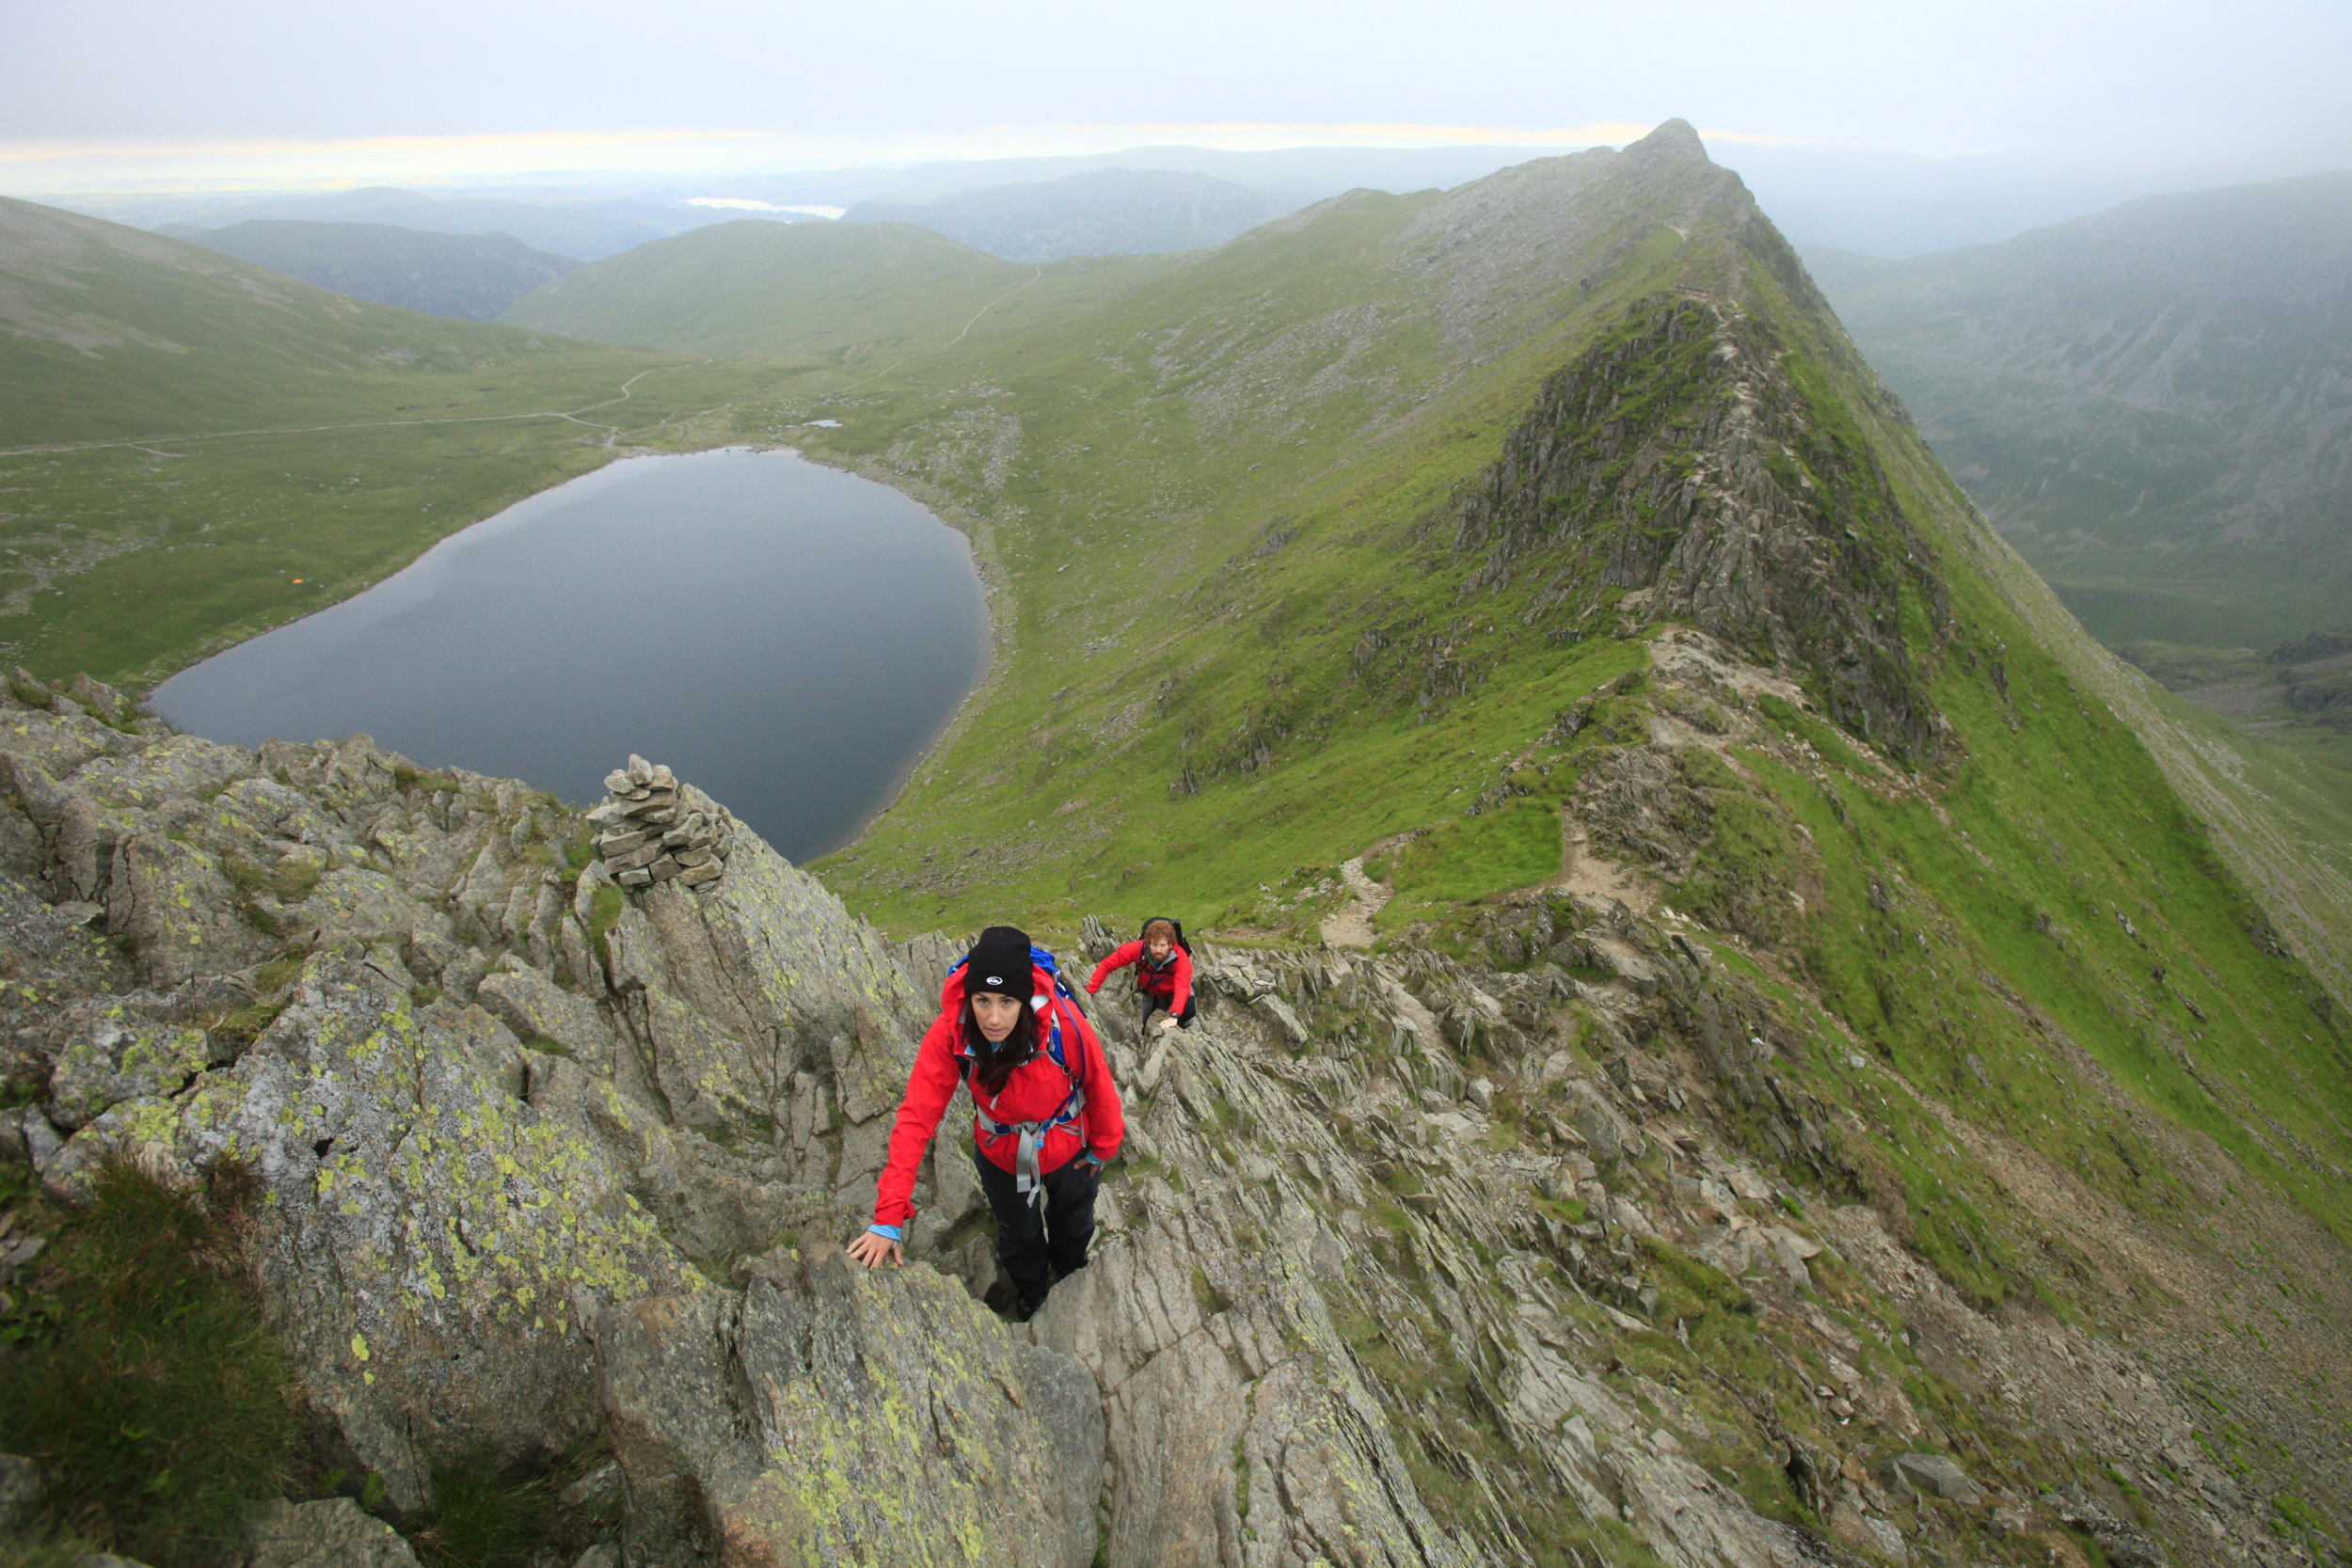 ...and the same ridge in summer. Conditions can be completely different just weeks apart, so check the forecast! Photos: Tom Bailey, Trail Magazine.